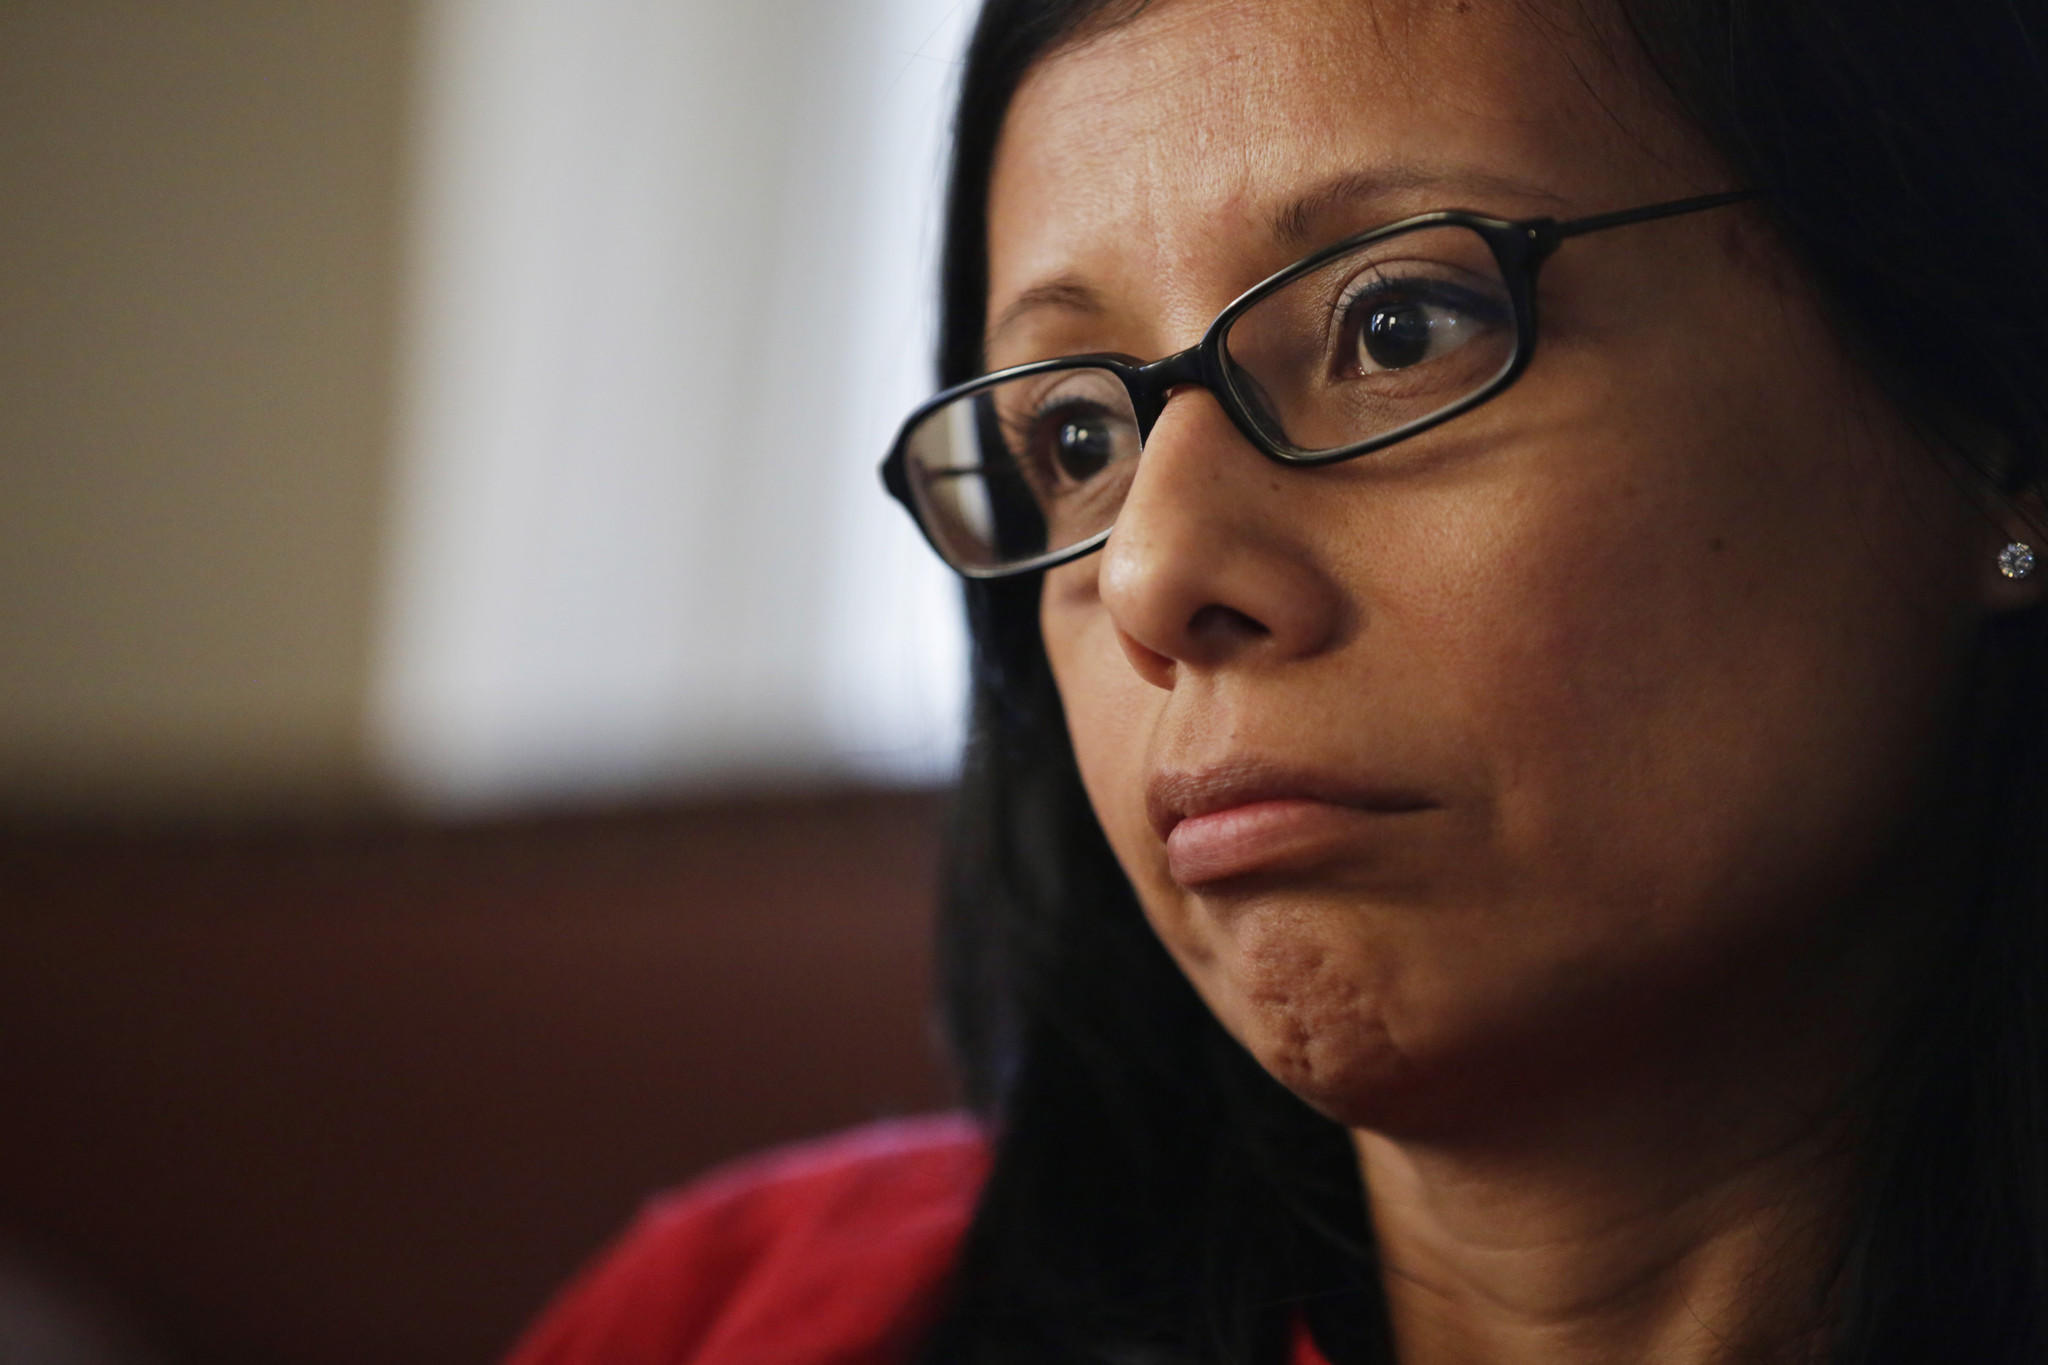 Cecilia M. Garcia pauses during an emotional interview as she speaks about her son, Joaquin Garcia, who was killed in a car crash last year on April 22, 2014 in Elgin.